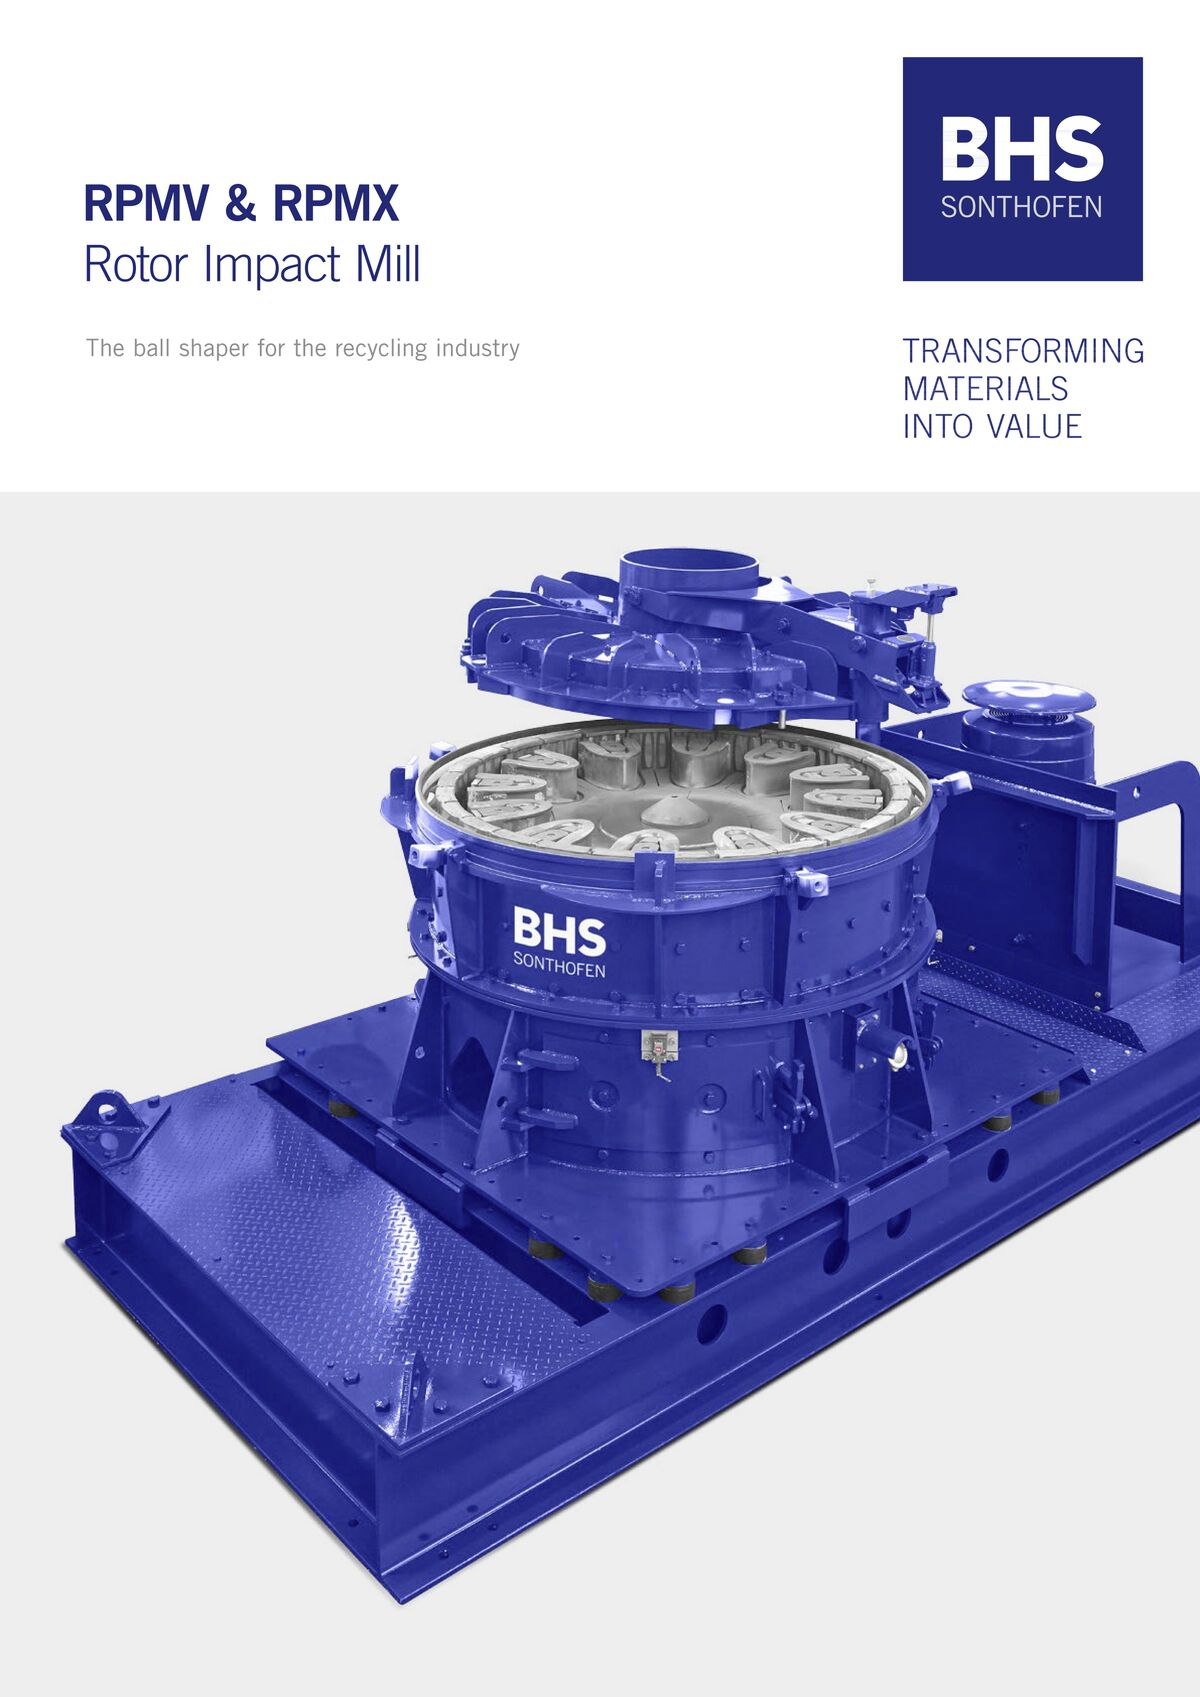 """Rotor impact mill for recycling (RPMV & RPMX)"" brochure"